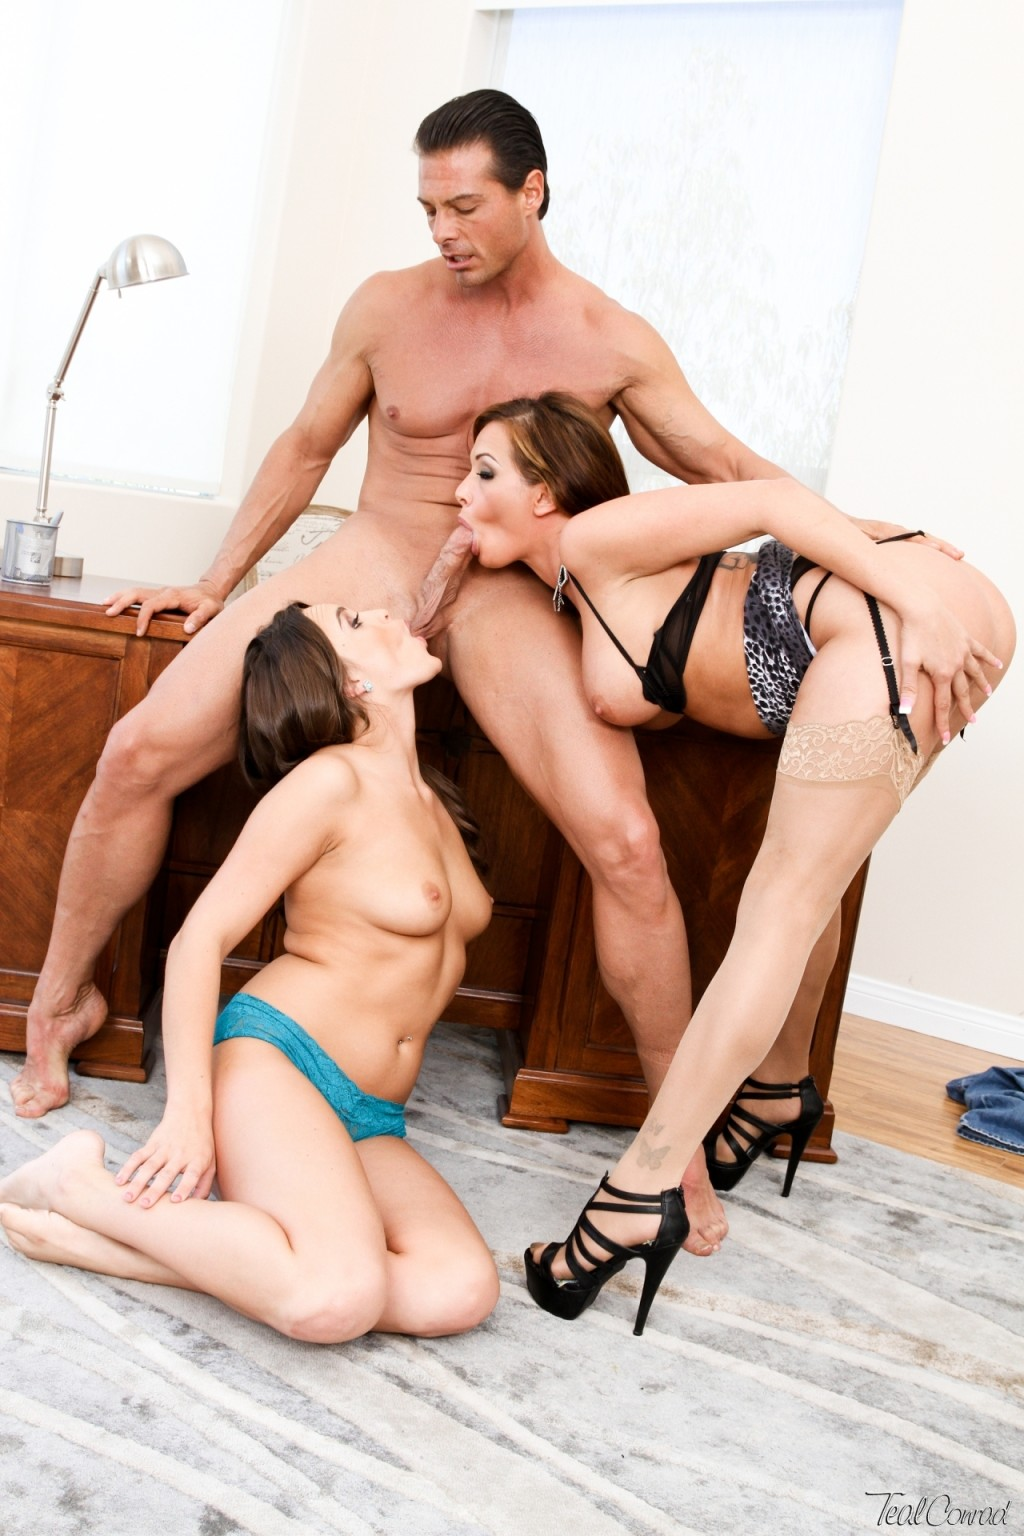 nipples teal conrad and tory lane hardcore threesome sex and cum sharing 1